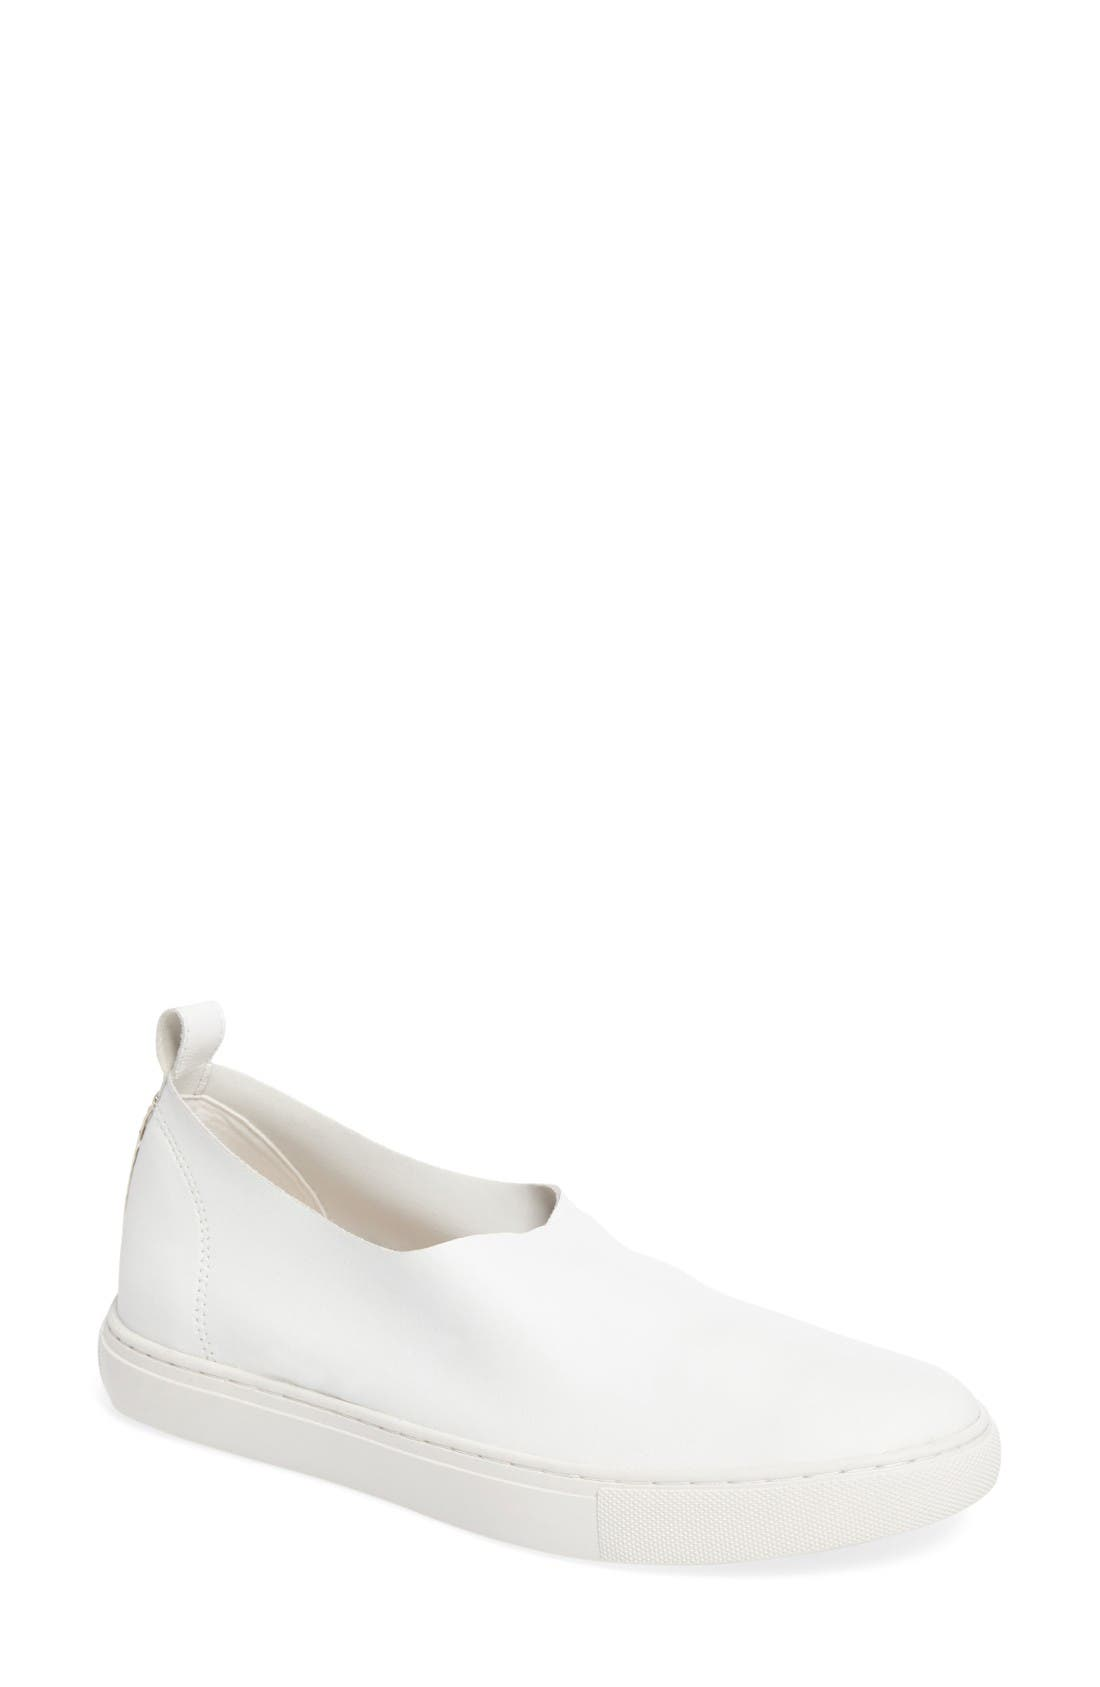 KENNETH COLE NEW YORK Kathy Slip-On Sneaker